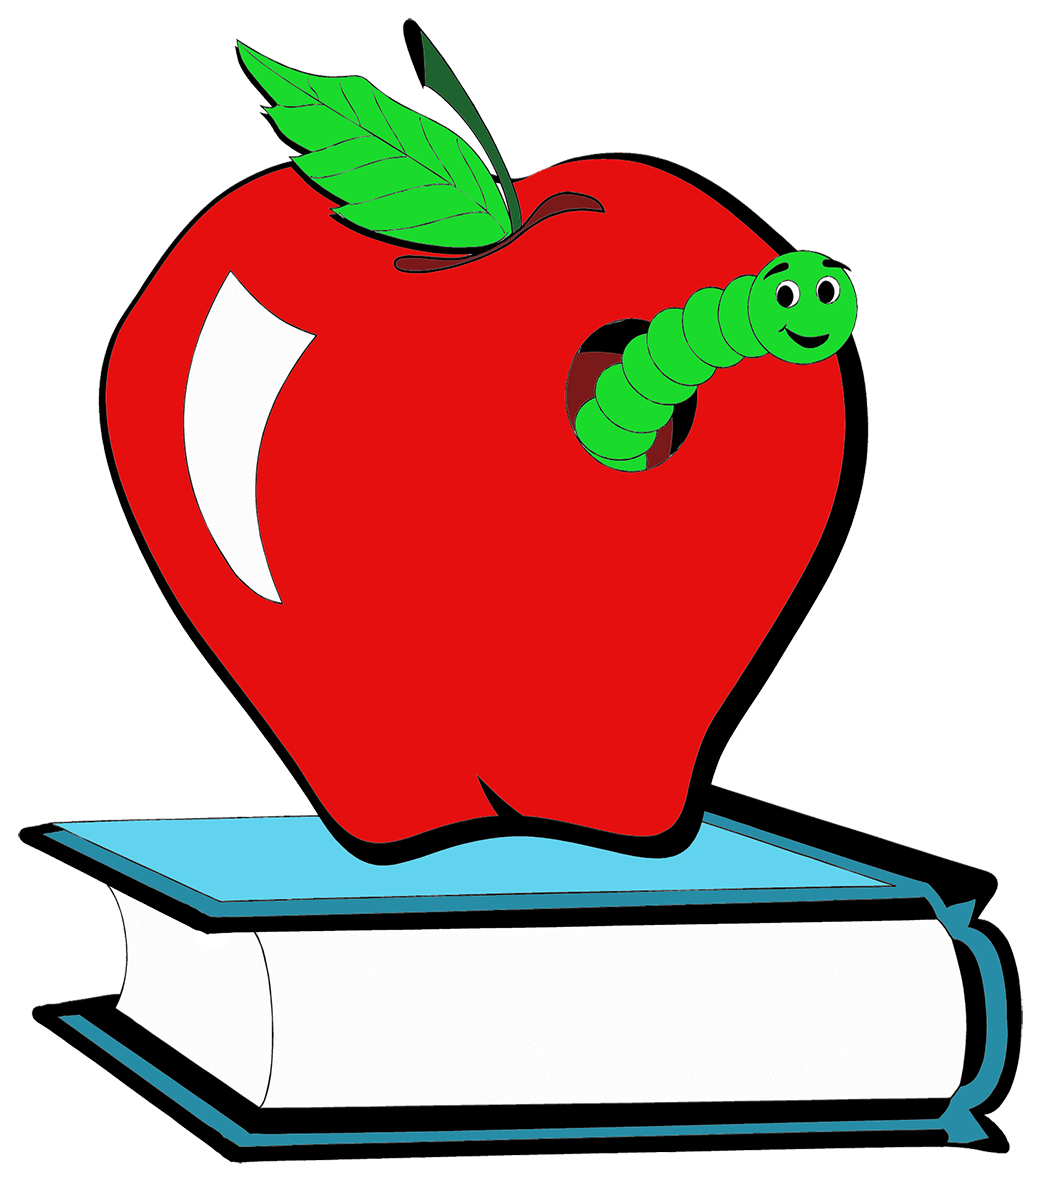 red apple with book worm